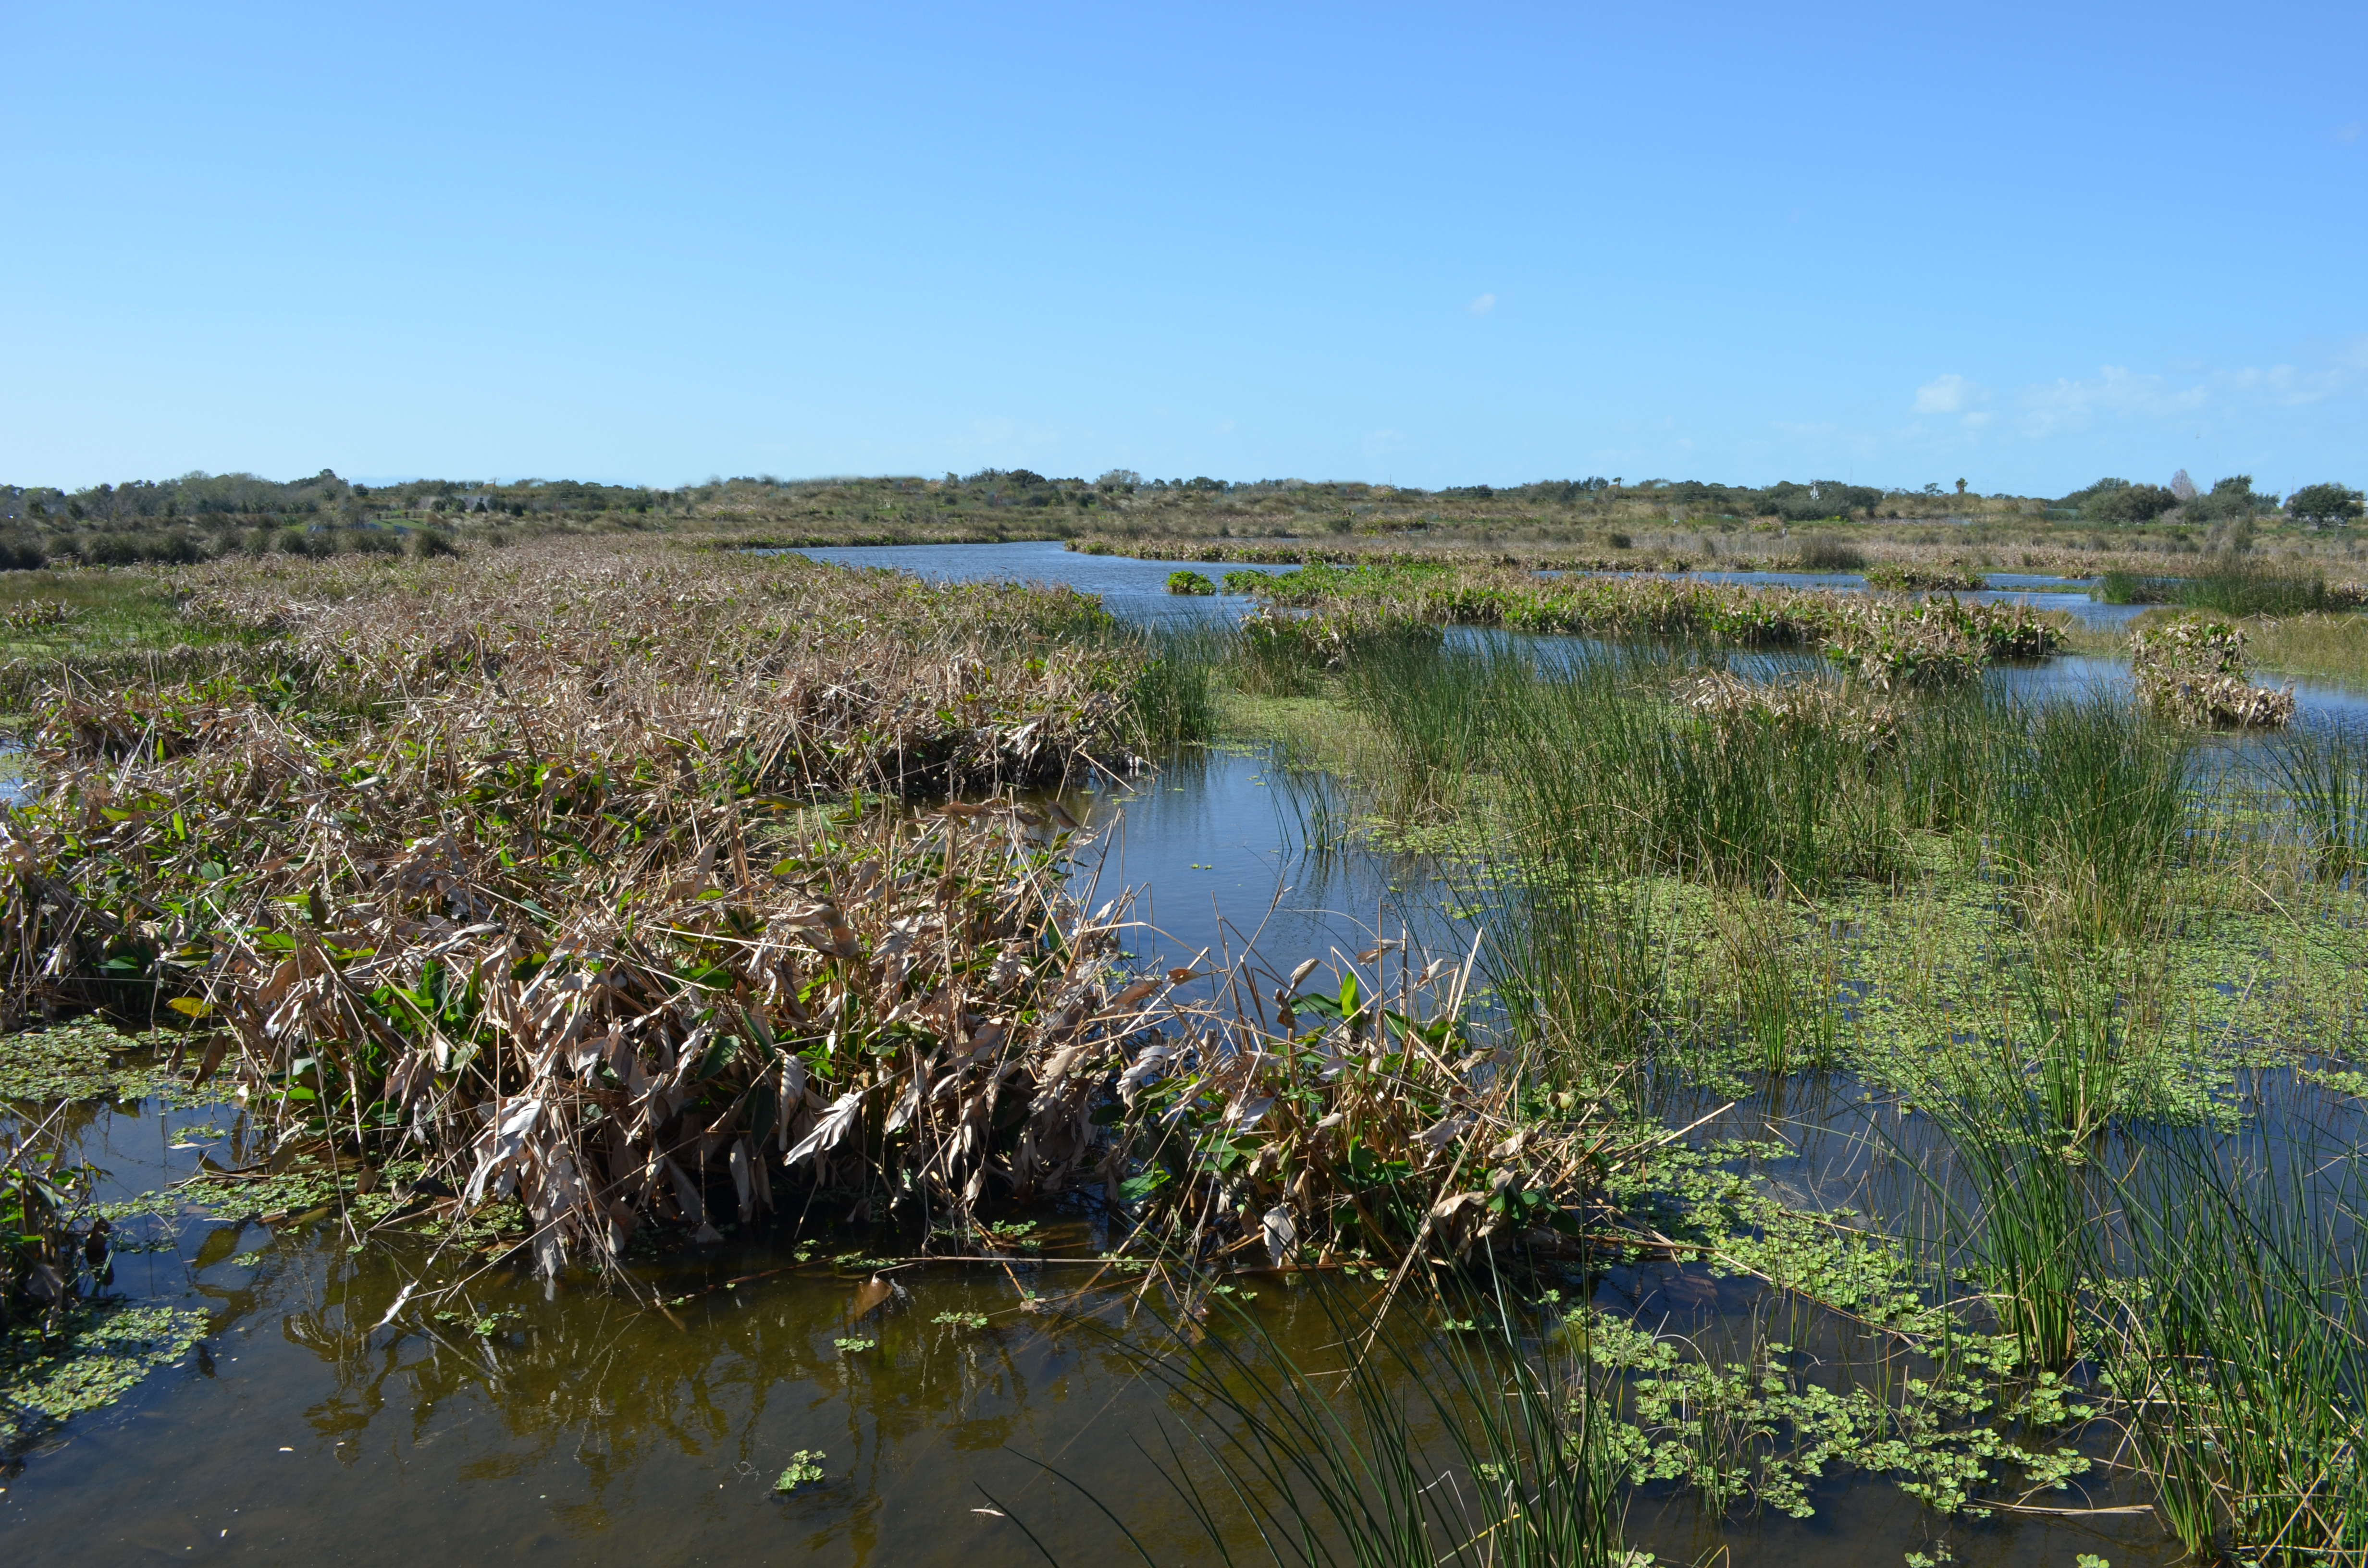 little river wetland project great marsh essay A wetland is not just alien to human life it provides little basis for a life beyond subsistence one may hunt or forage there, but a wetland is not solid enough to allow farming or.